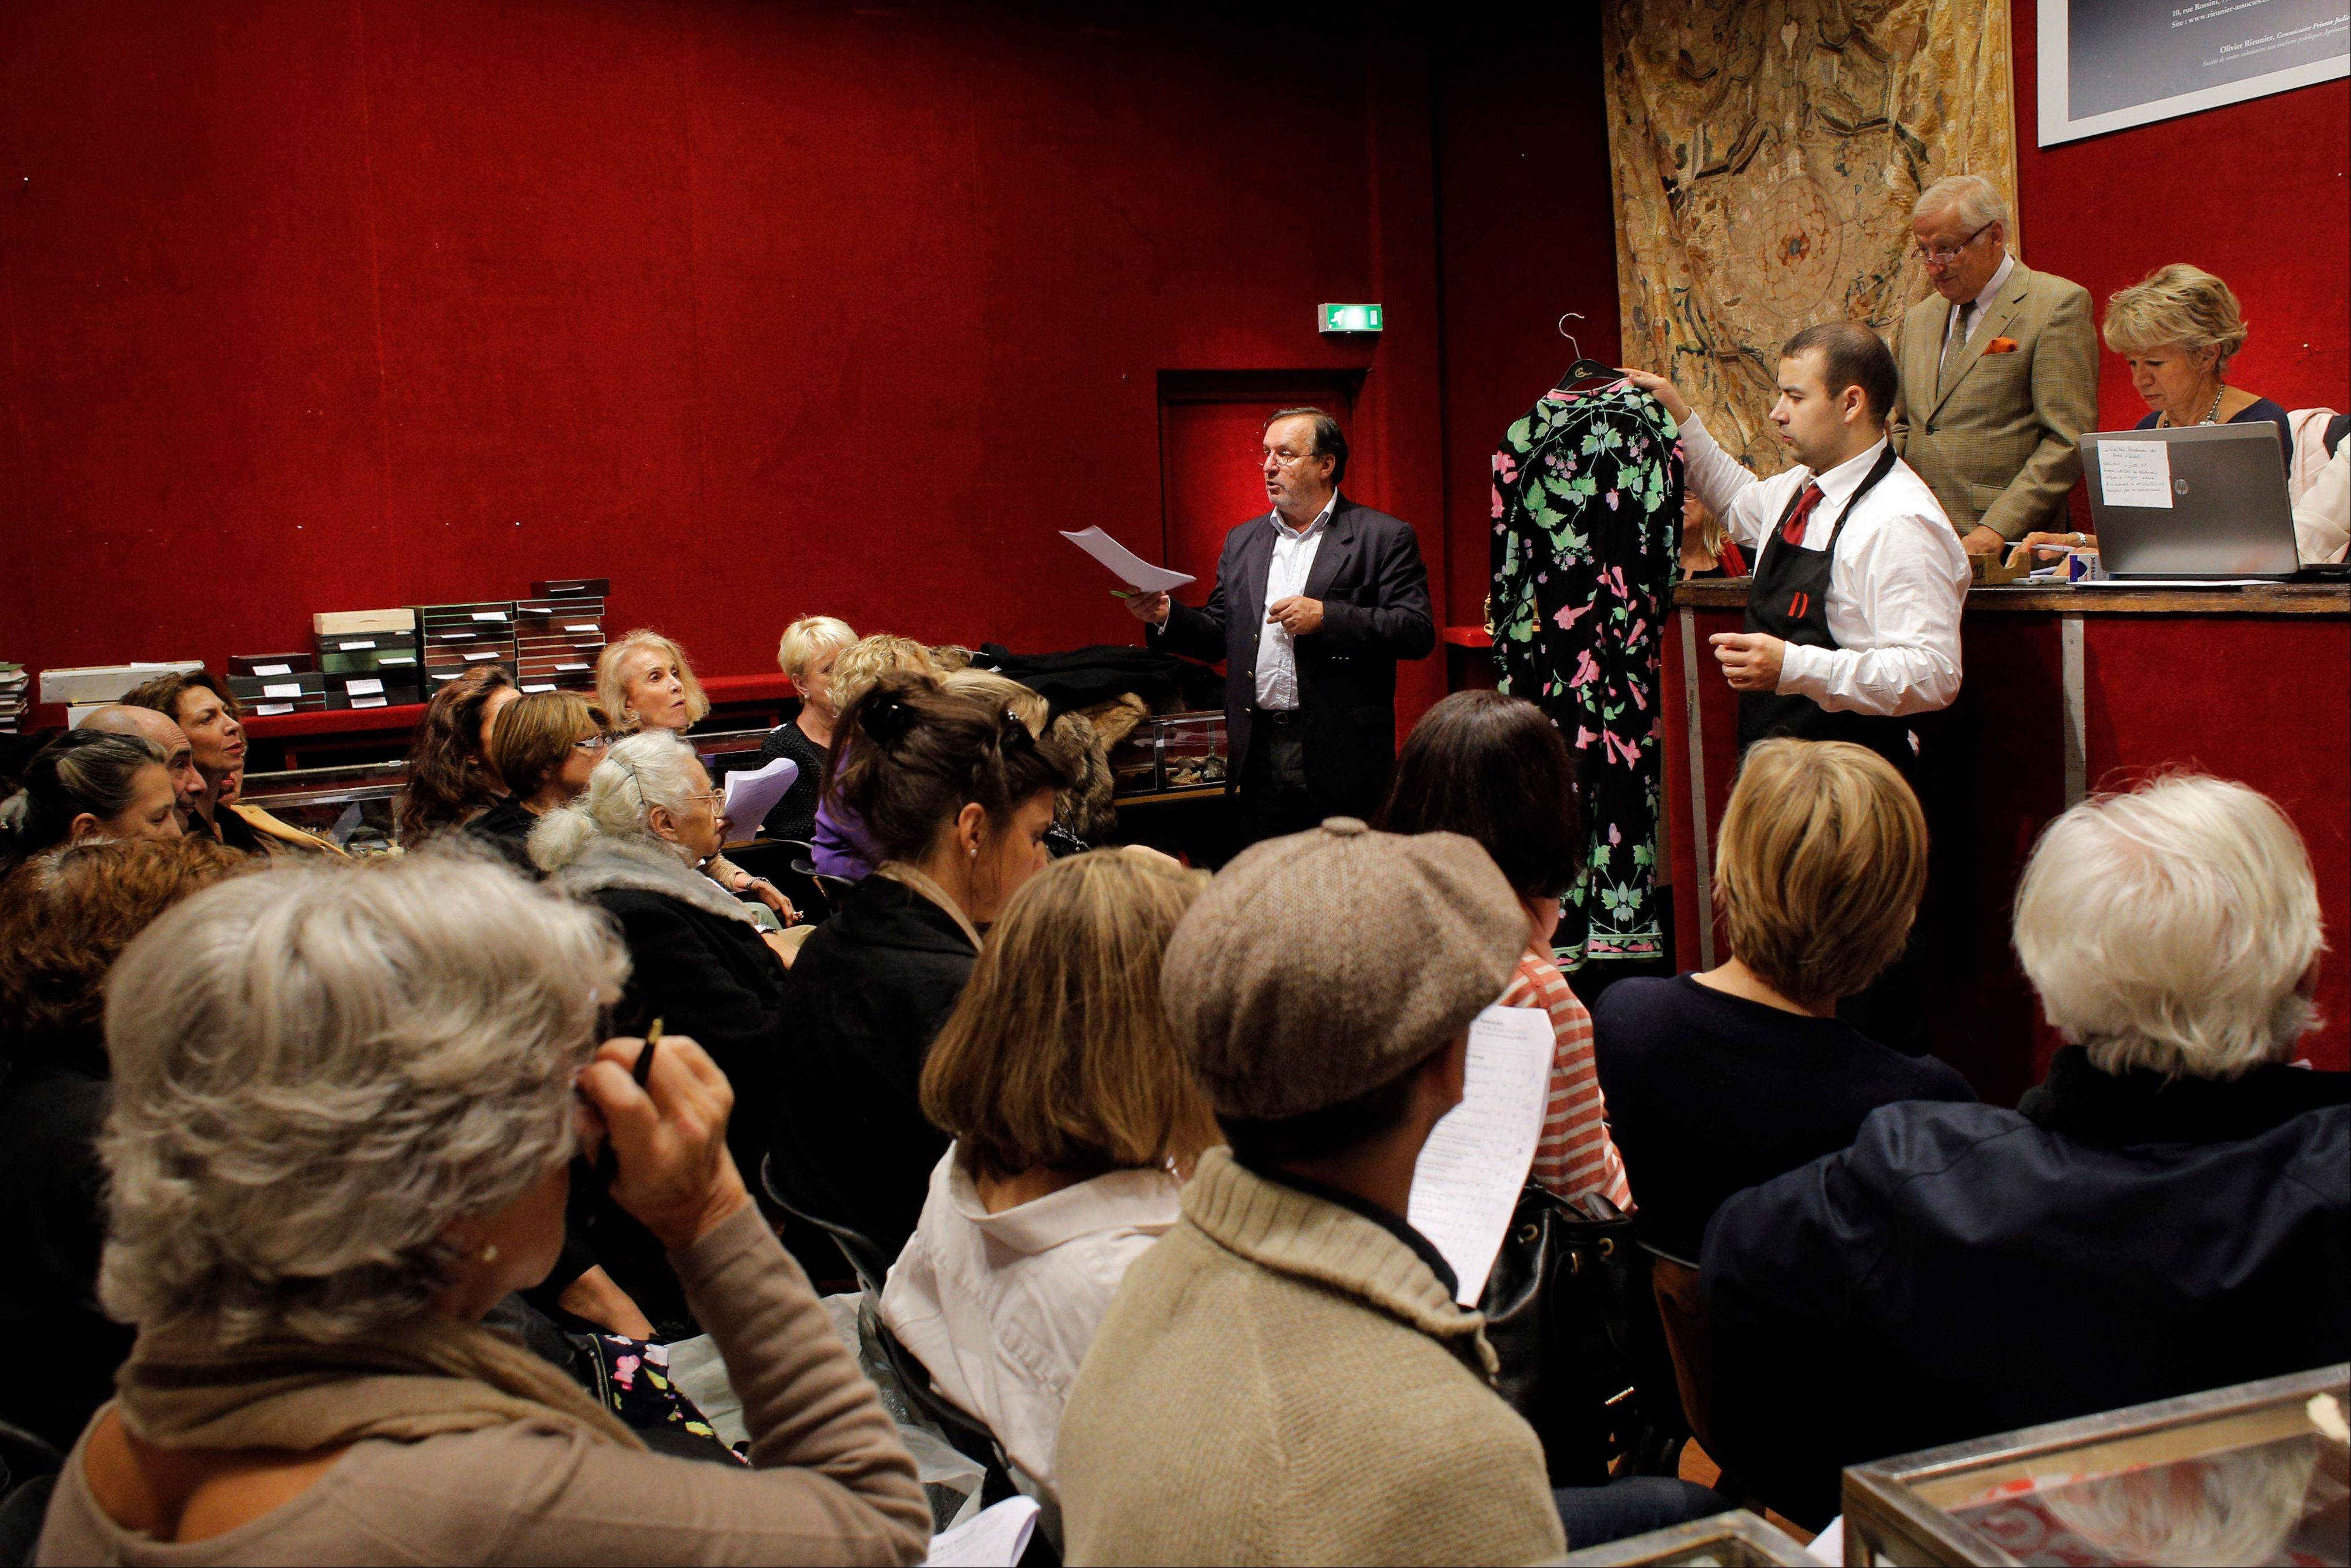 An auction officer sells clothes at the Drouot auction's house, in Paris. The famous auction house in Paris offers 16 functioning auctions rooms and is the world's largest auction house open to the public.